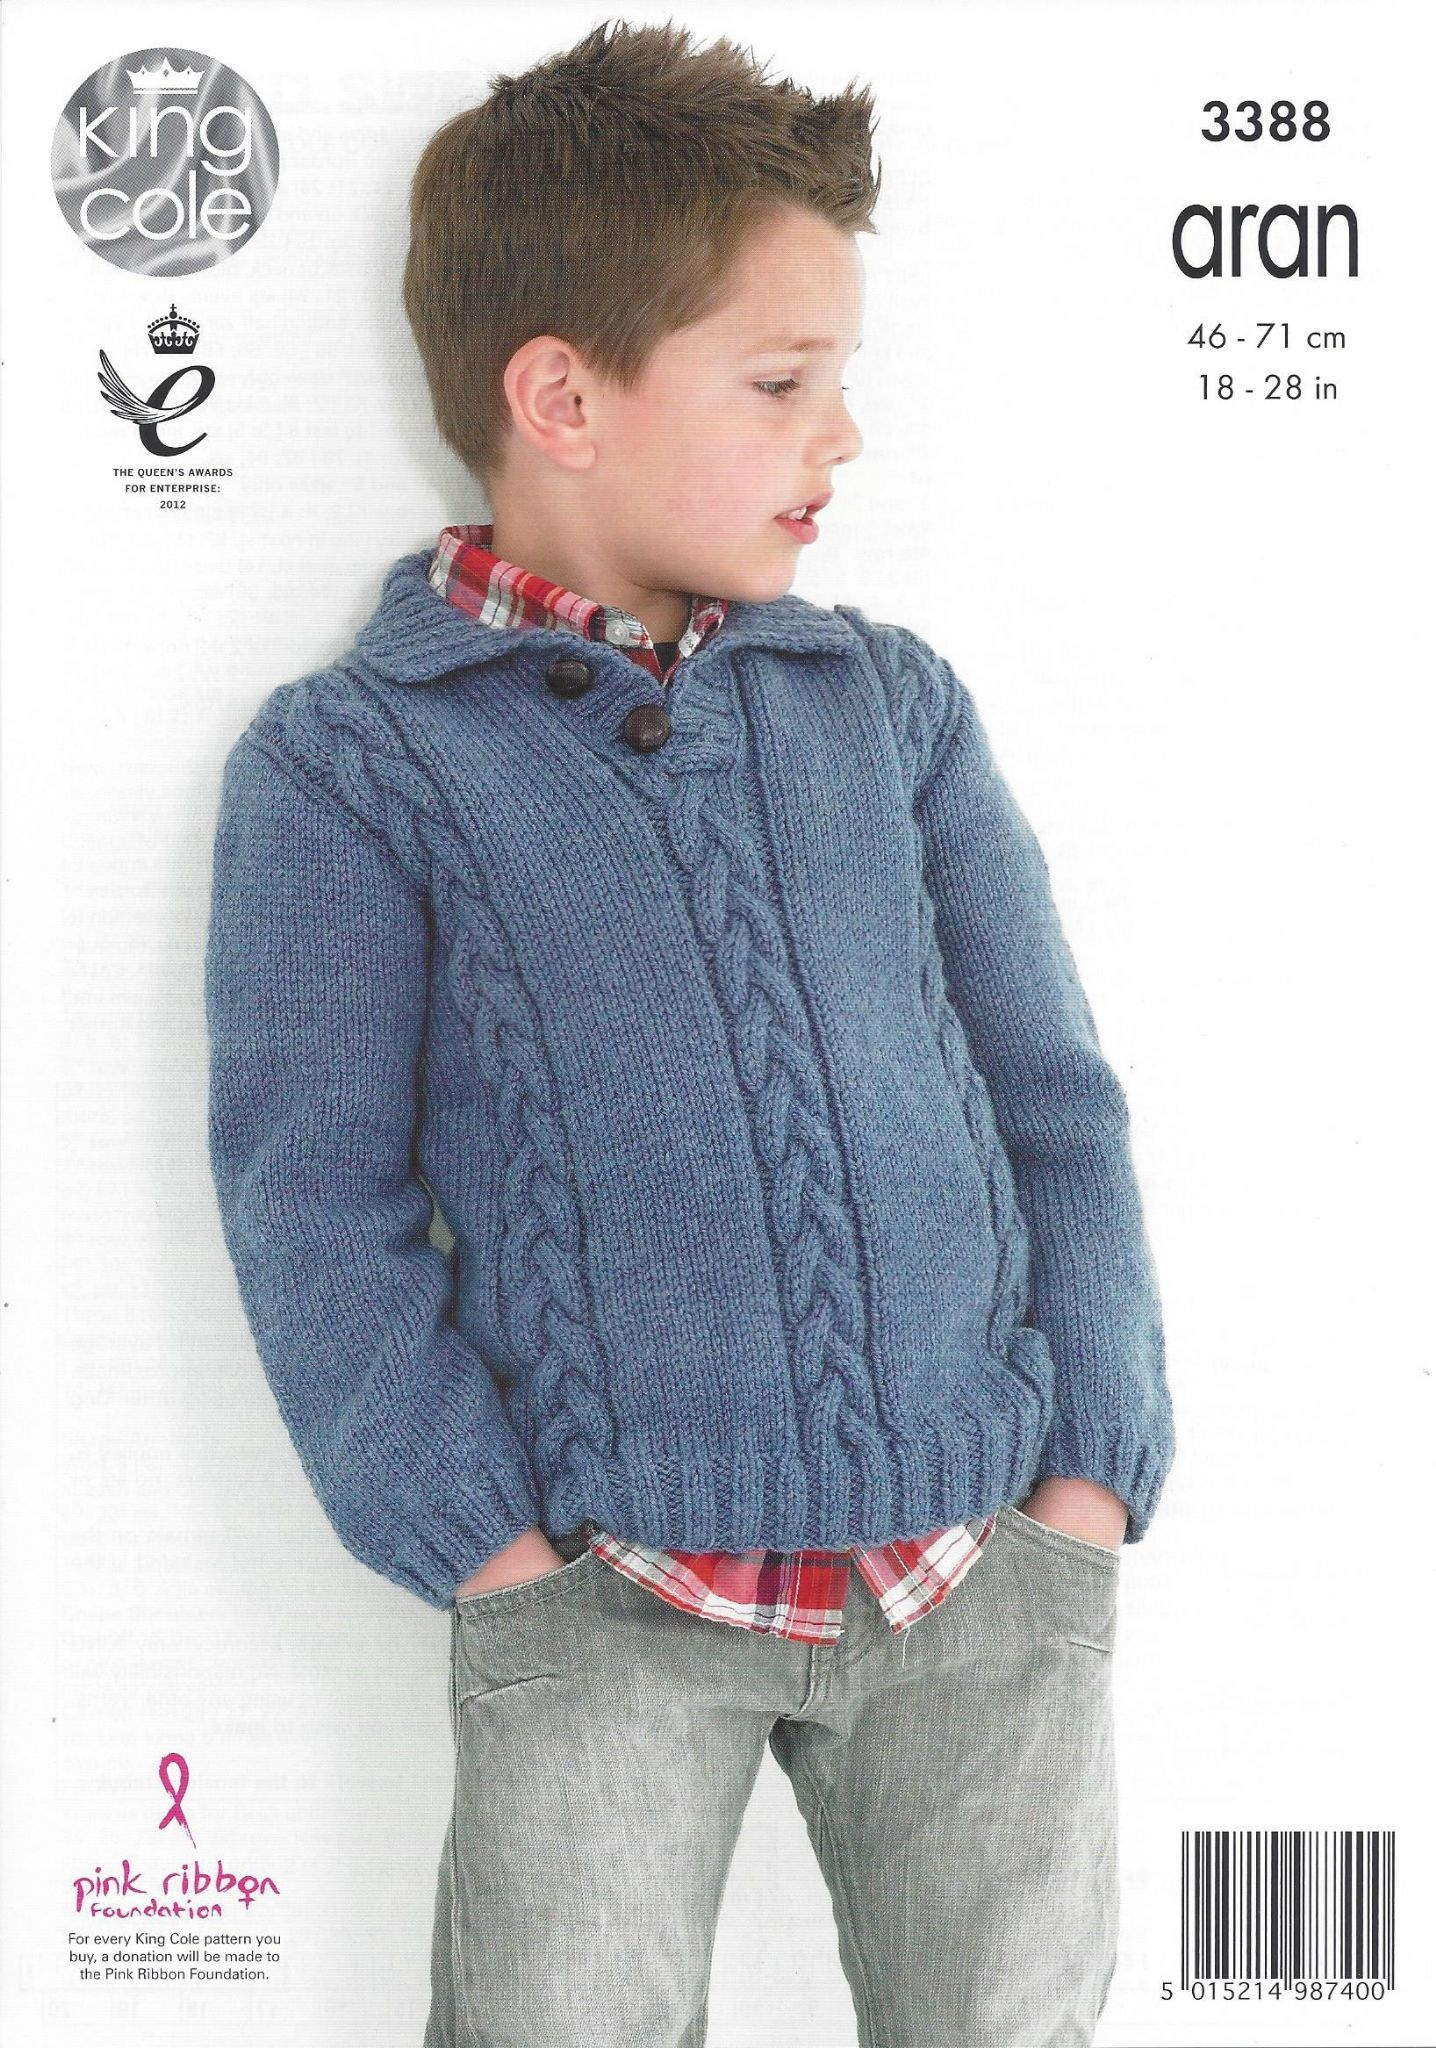 King Cole Aran Knitting Pattern - 3388 Cabled Sweaters